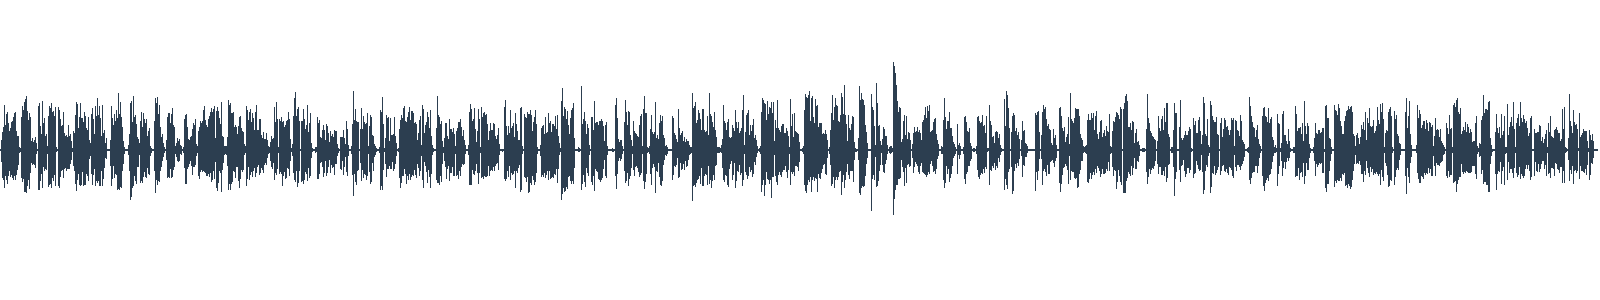 Modlitba za Owena Meanyho waveform